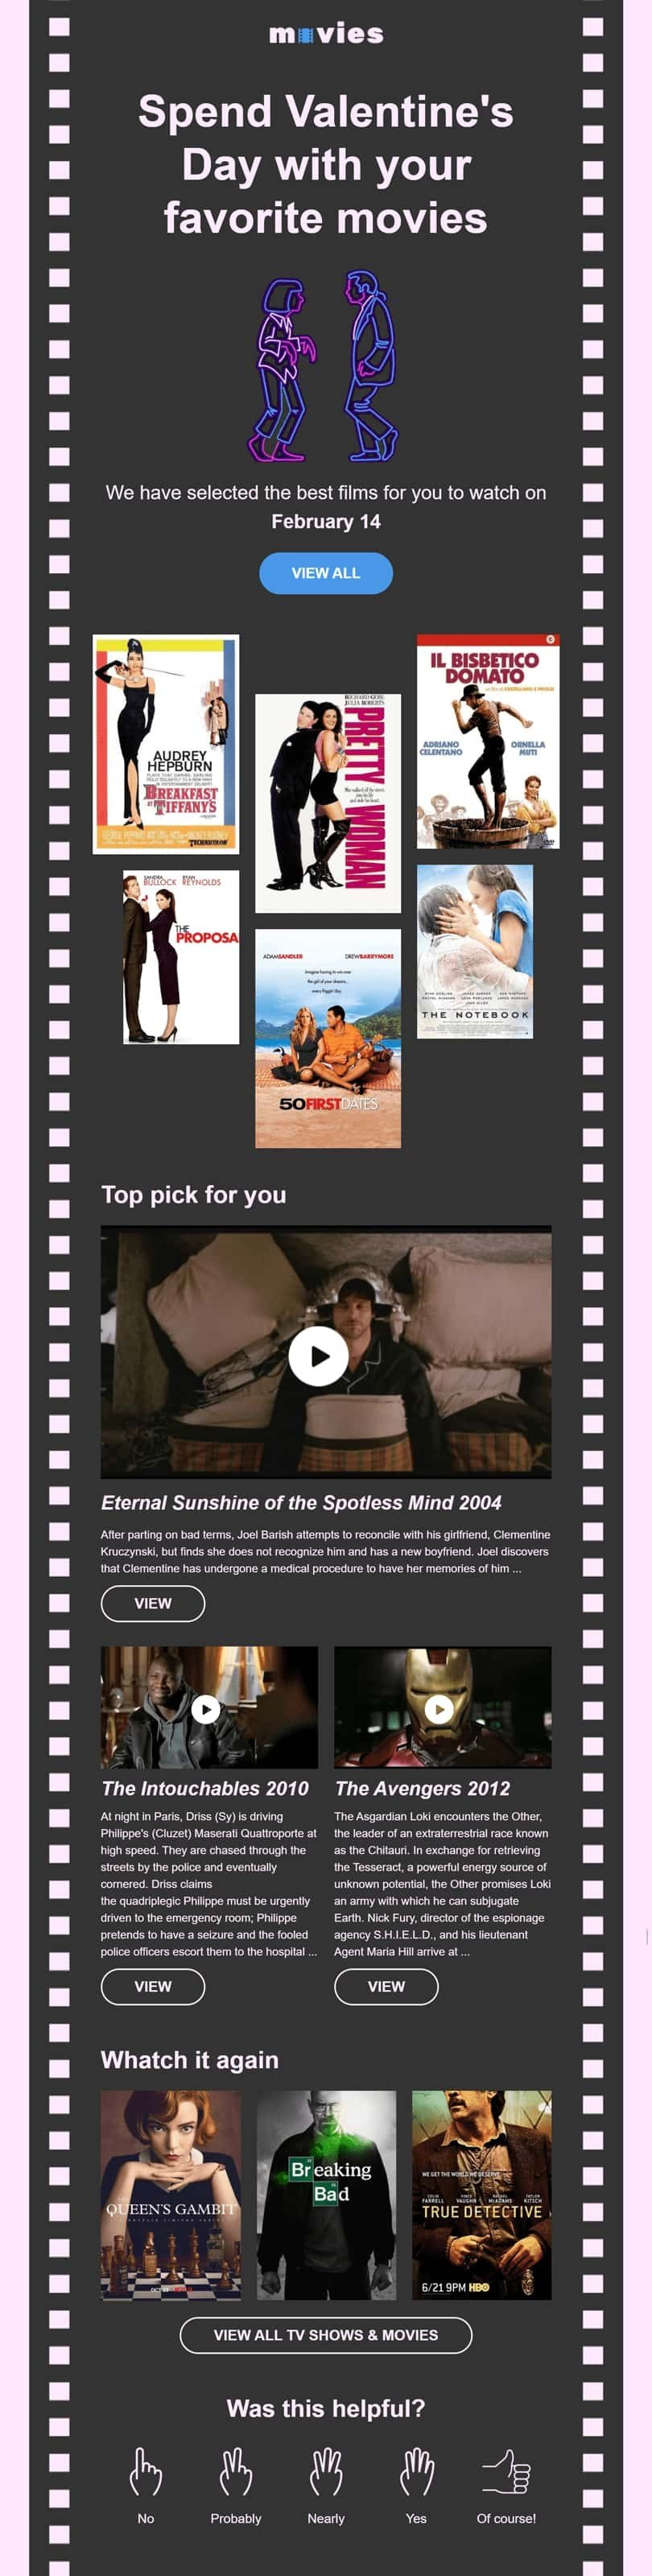 Valentine's Day Email Template «Romantic movies» for Movies industry desktop view